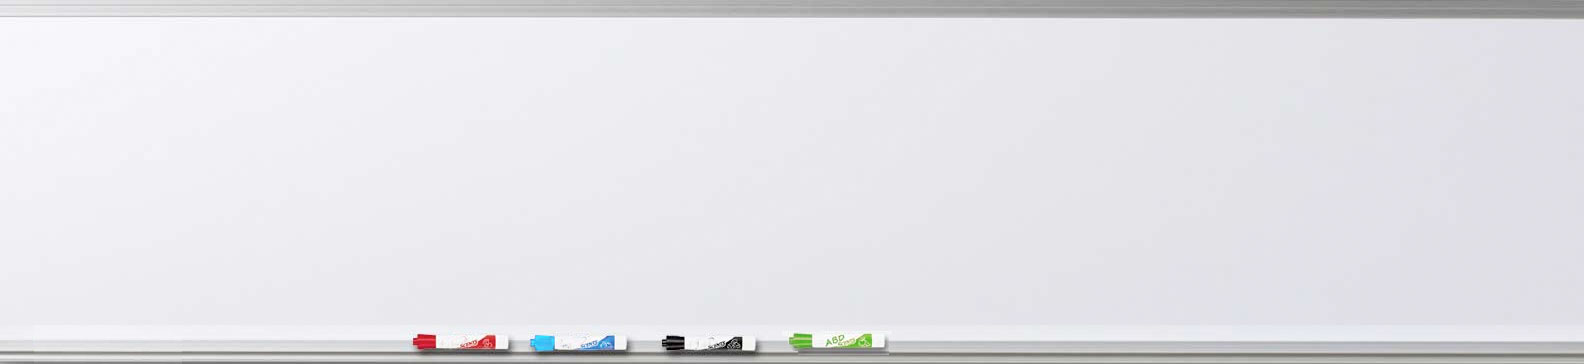 backgroundwhiteboardblank2